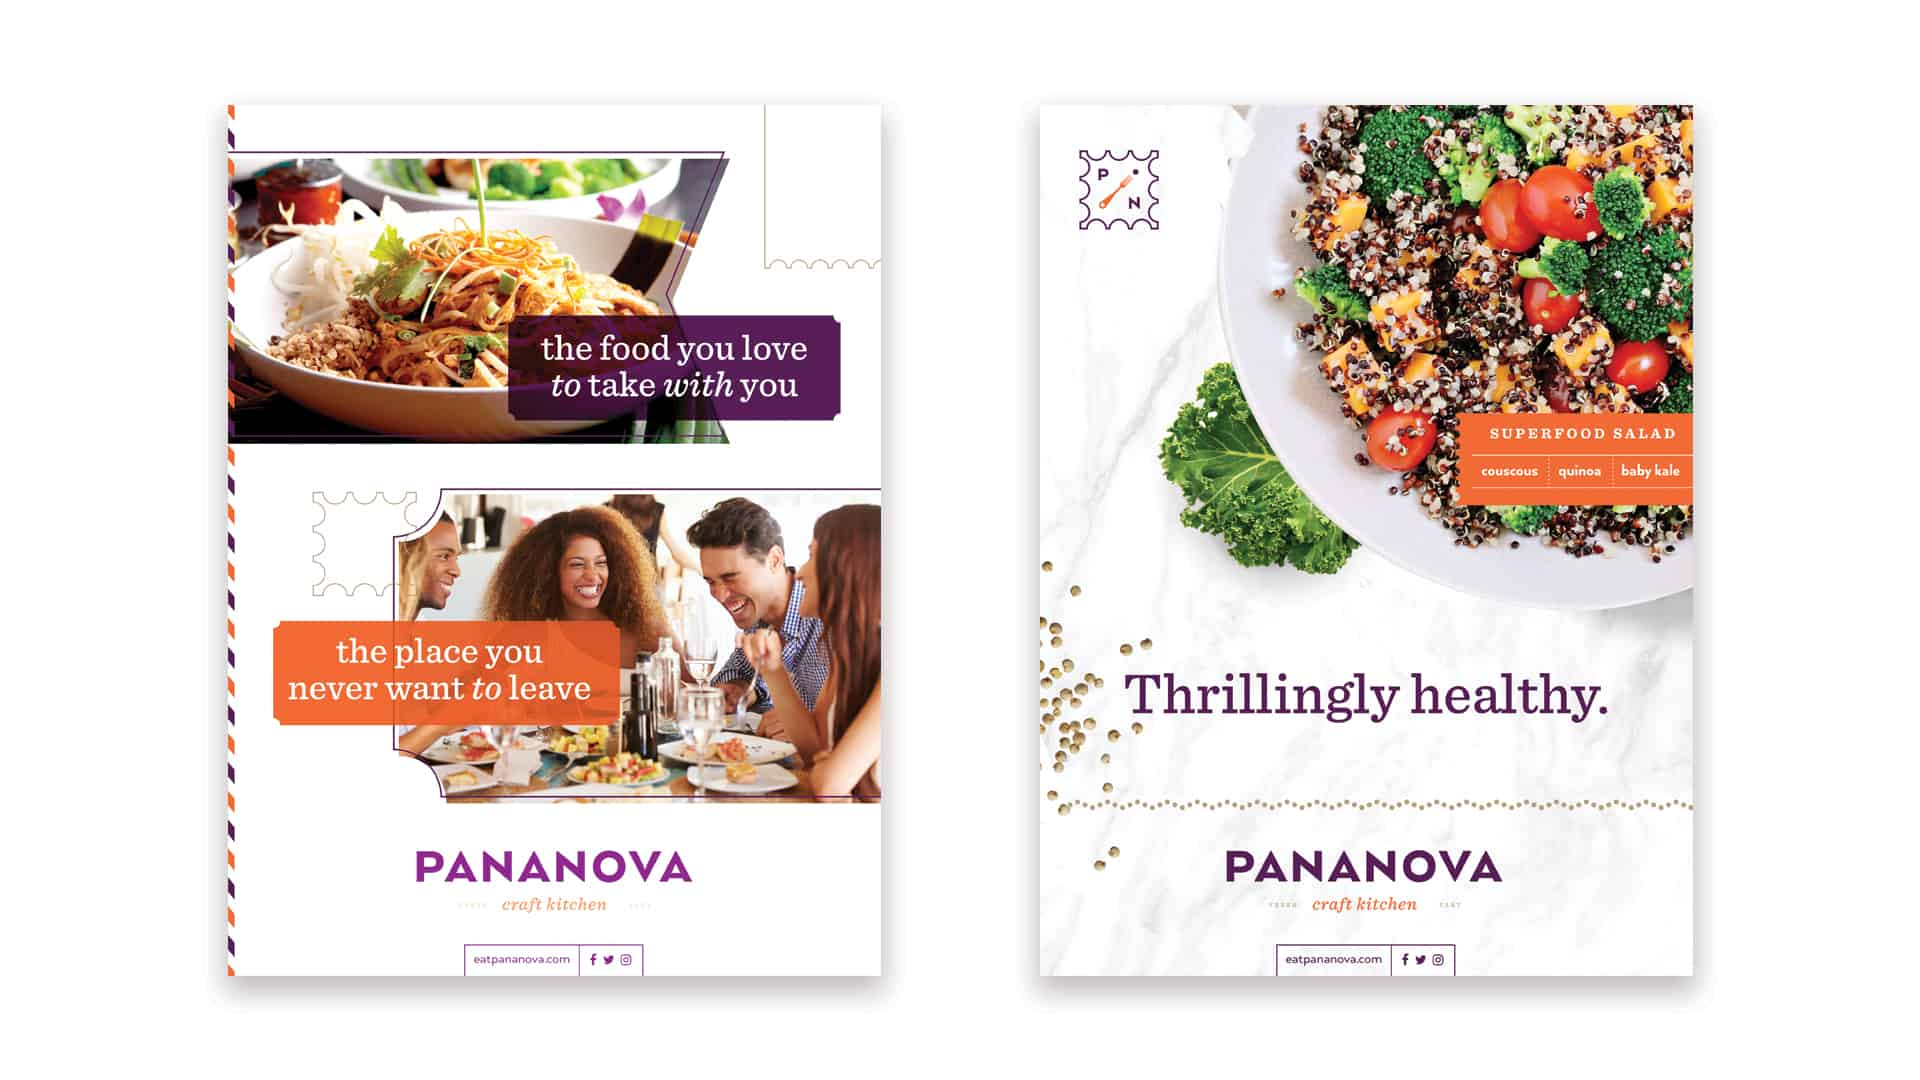 PanaNova fast casual restaurant advertisements design and creative